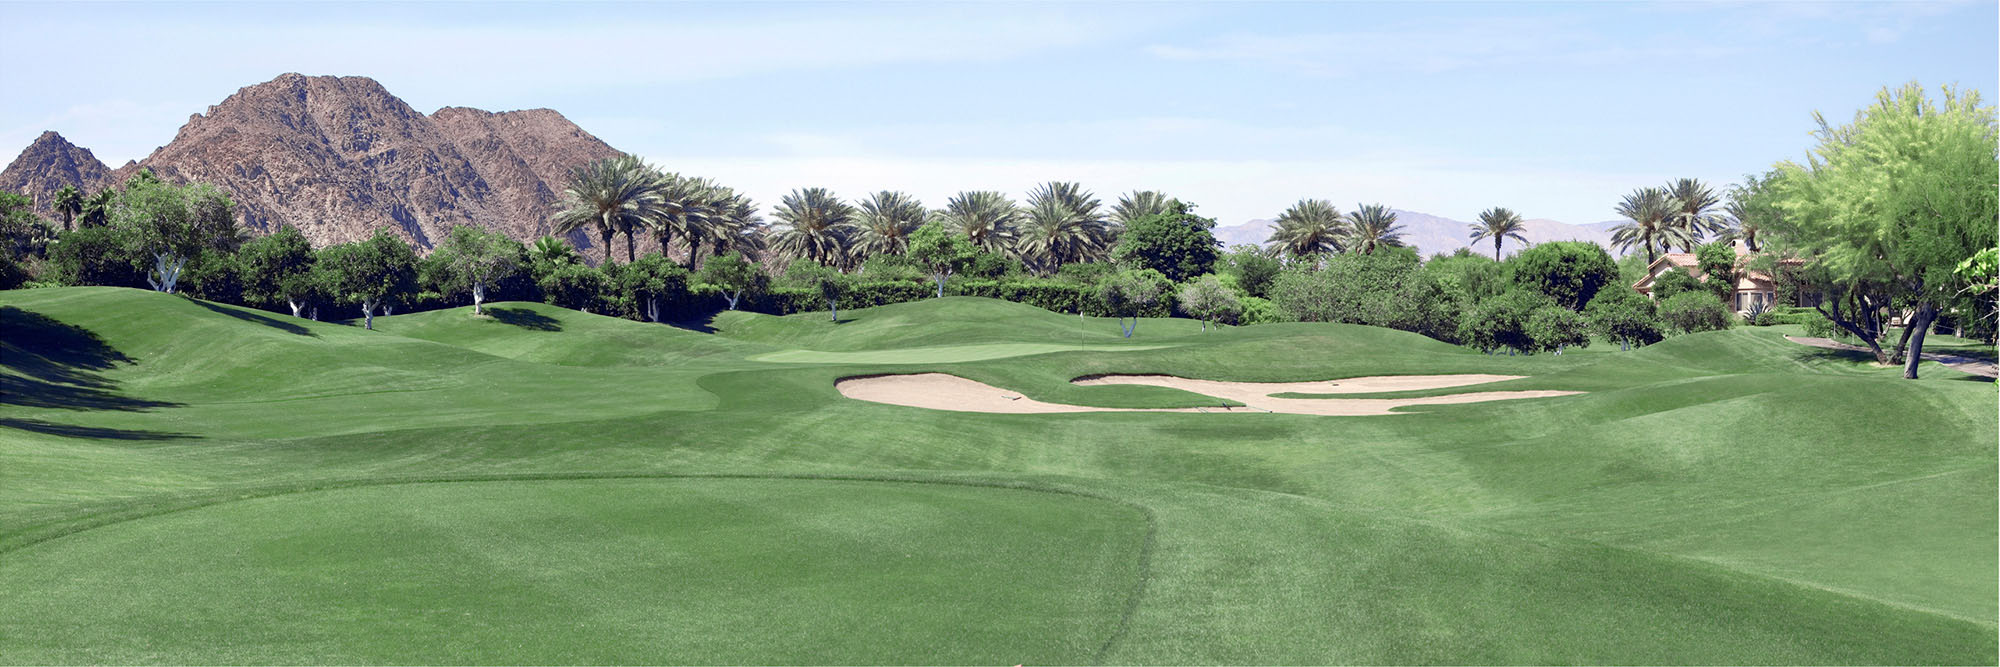 Golf Course Image - Rancho La Quinta Jones No. 4